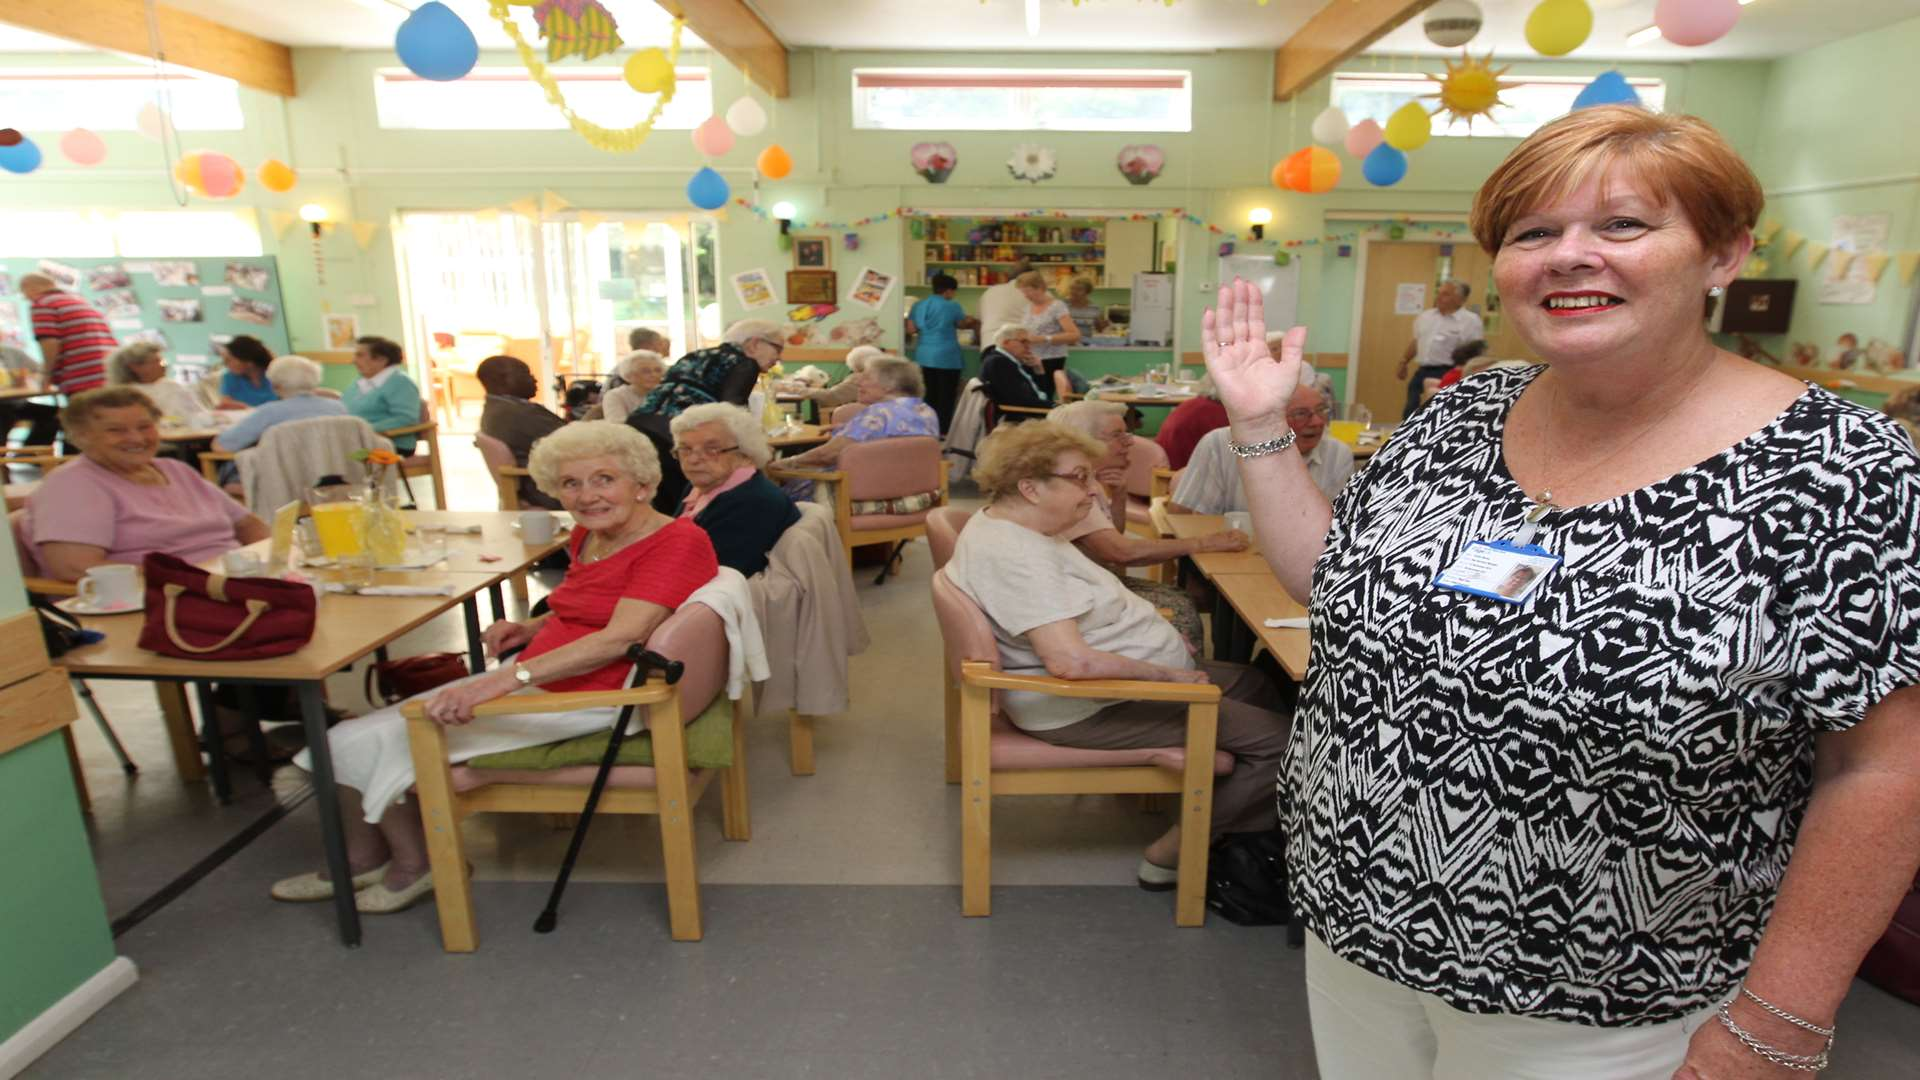 Chriss Monks, Day Services Manager, highlights the new day centre at Age UK